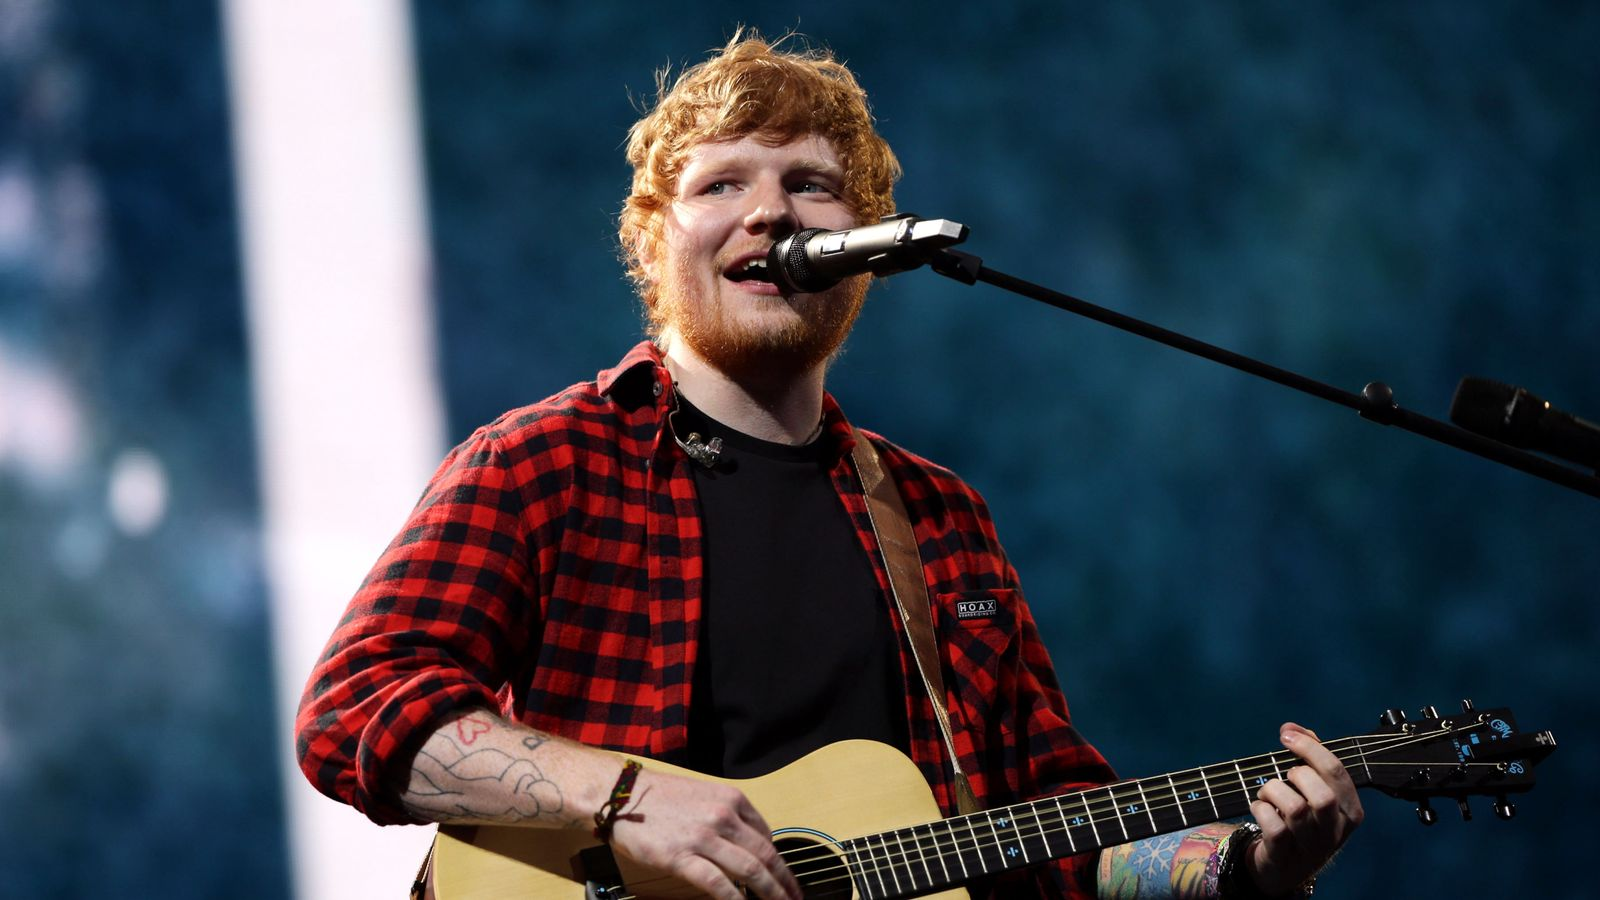 COVID-19: Ed Sheeran tests positive for coronavirus – but says he will gig from home